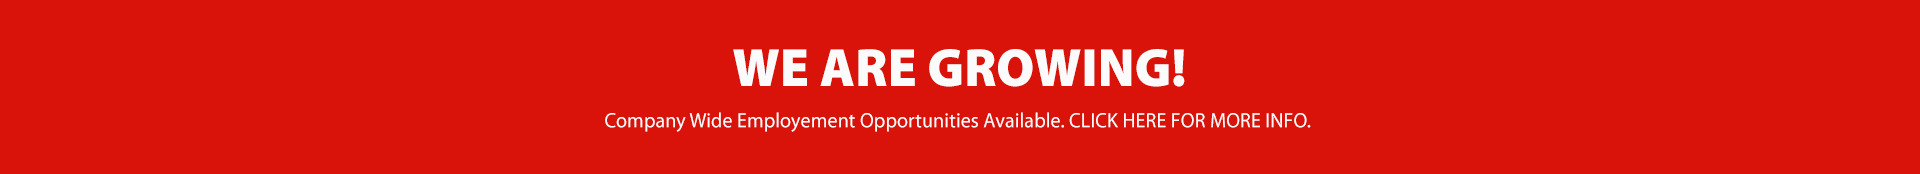 We are growing. Company wide employment opportunities. Click here